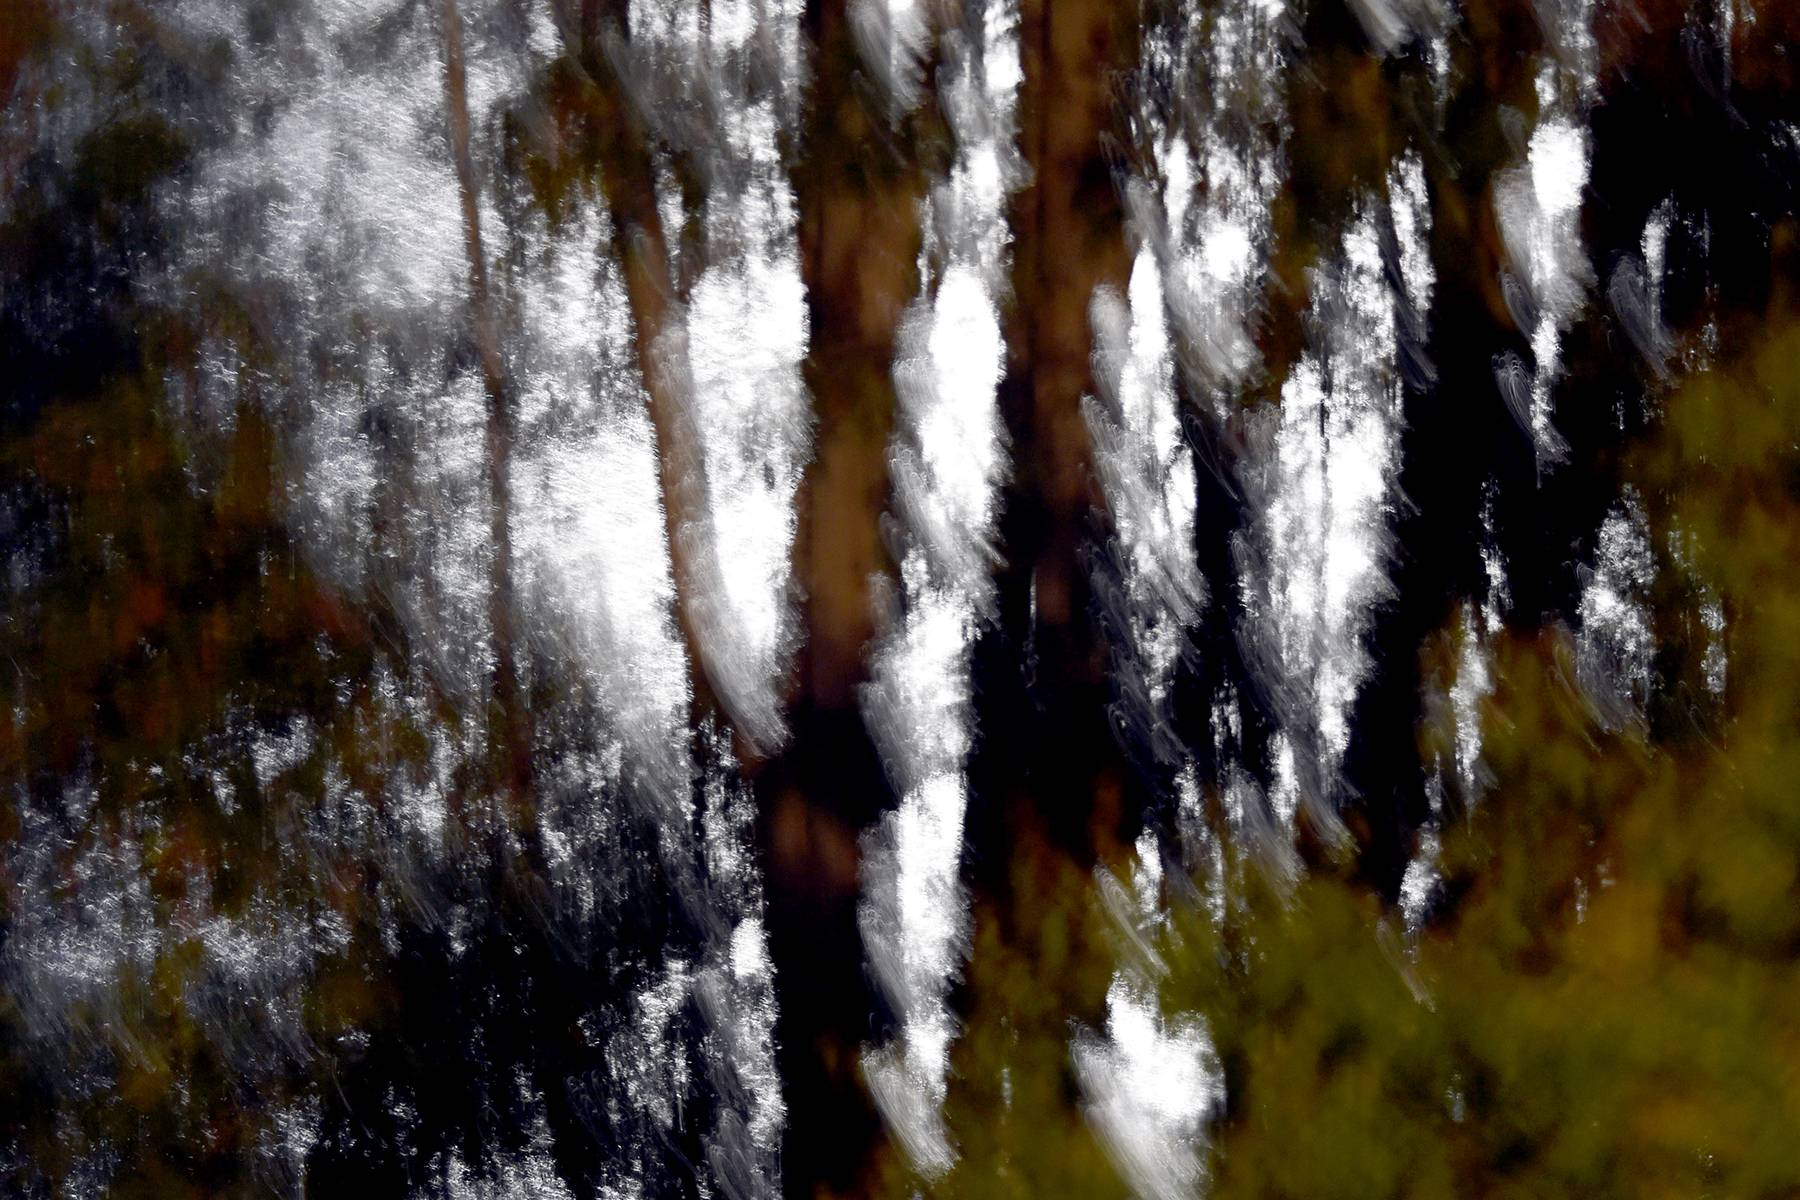 24_11-_trees_at_night_painted_with_light_dsc_7157.jpg